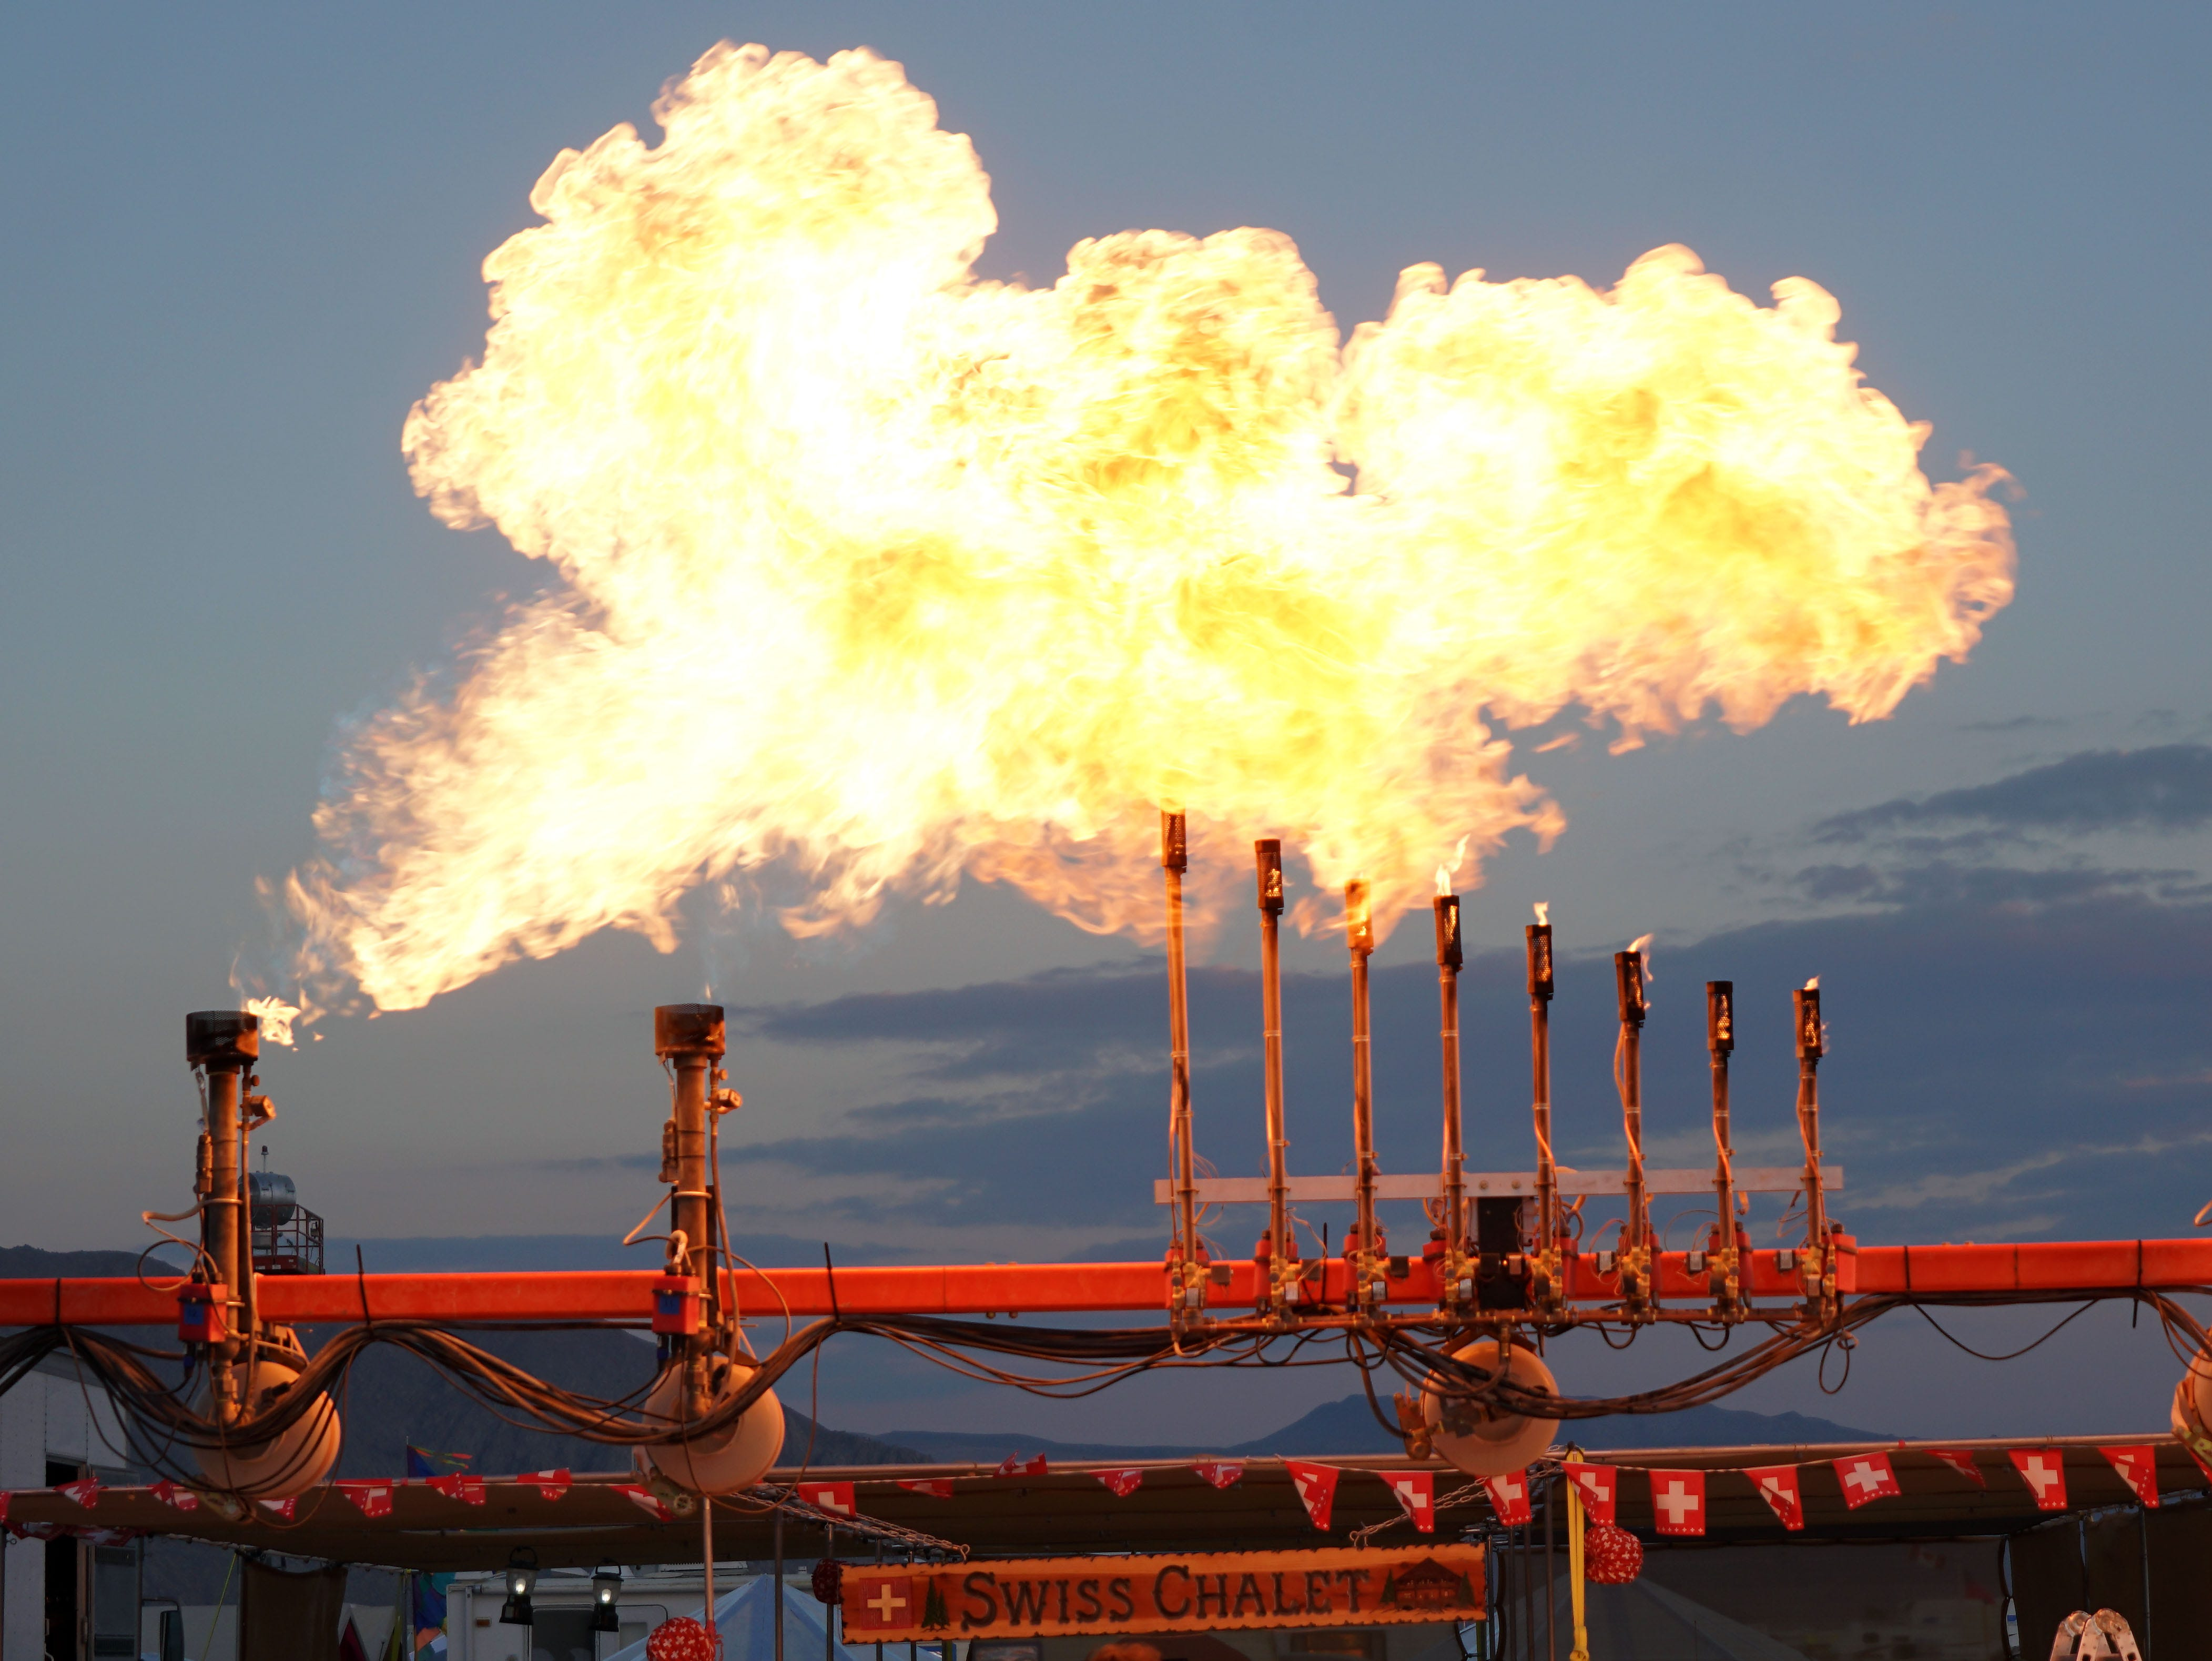 A Burning Man participant watches as an art installation belches fire. Propane-powered flamethrowers are a popular item to install on vehicles and art pieces at Burning Man.